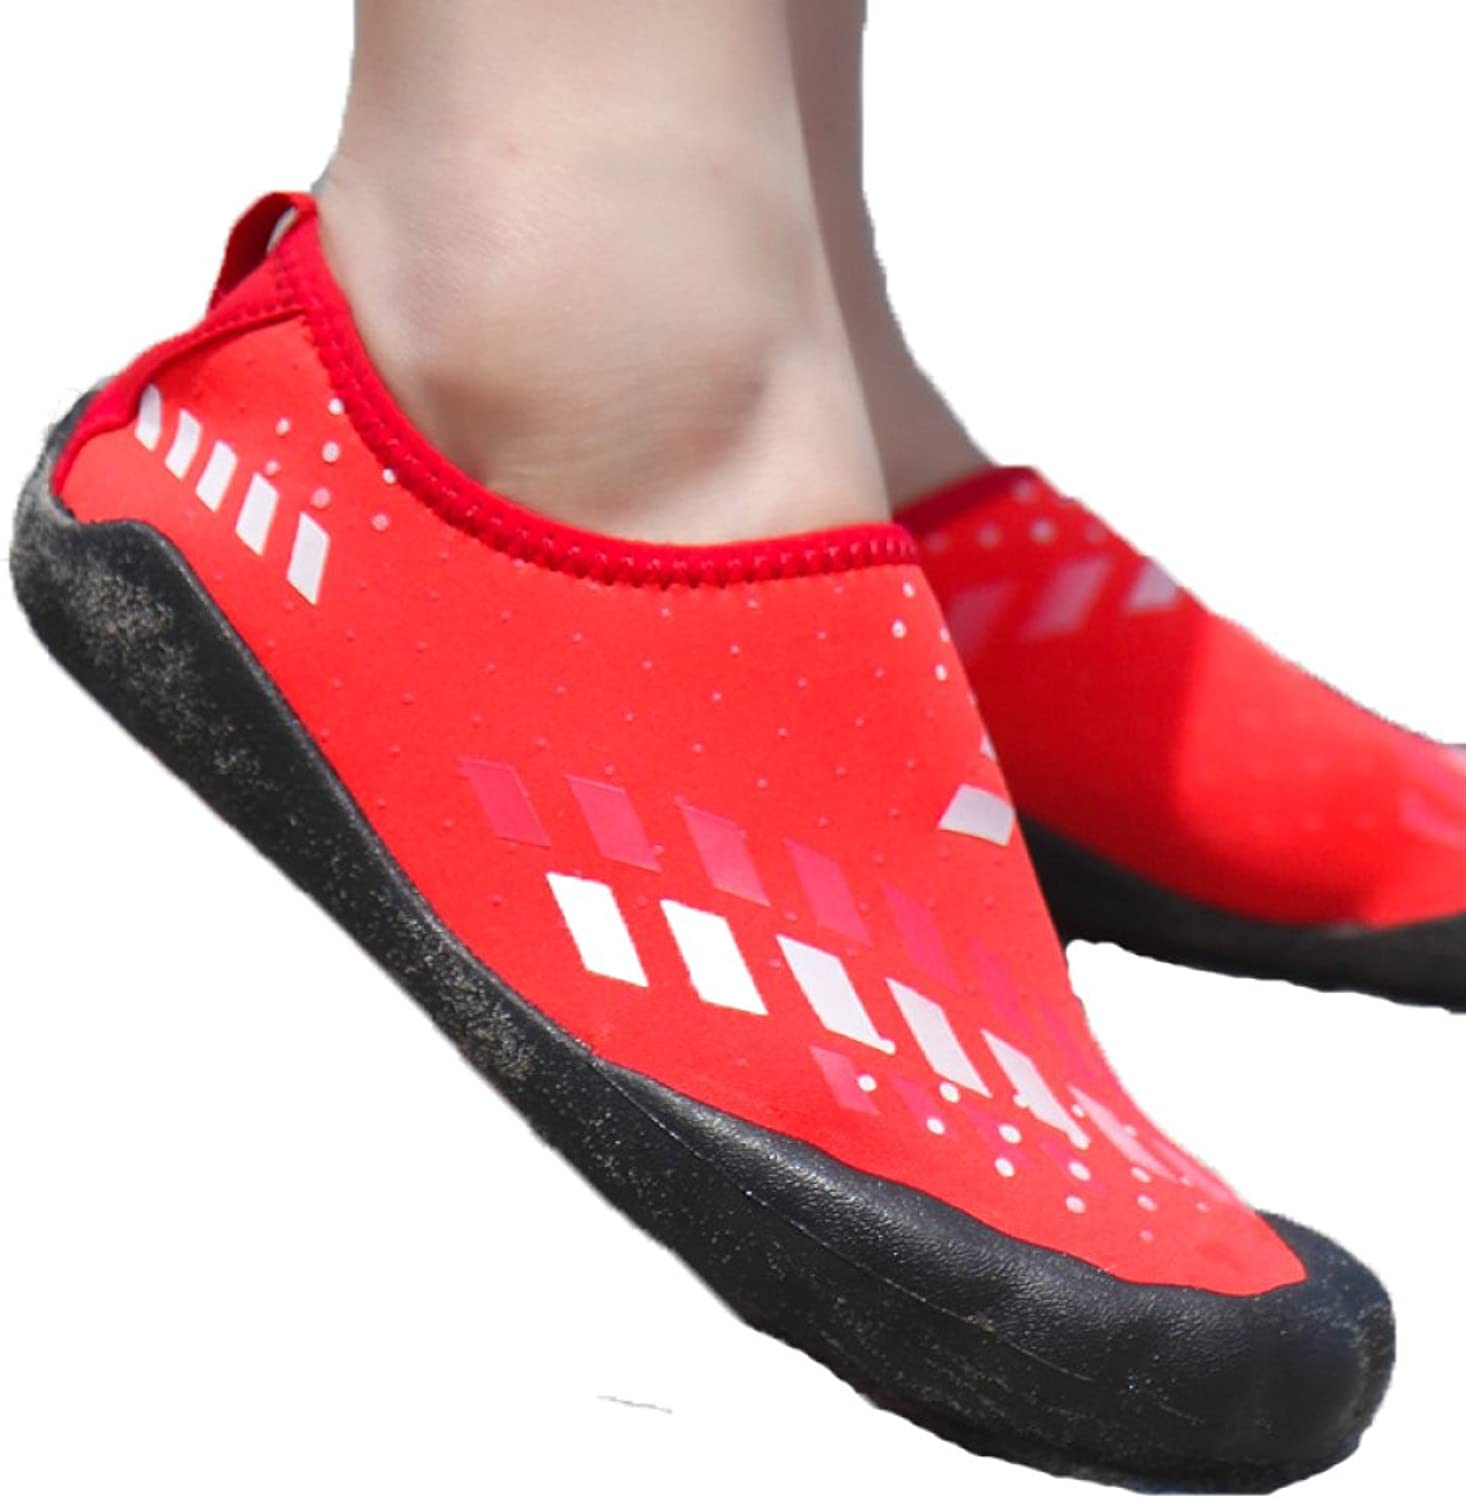 RBB 2018 couple outdoor non-slip beach shoes wear wading shoes men and women models five-finger shoes